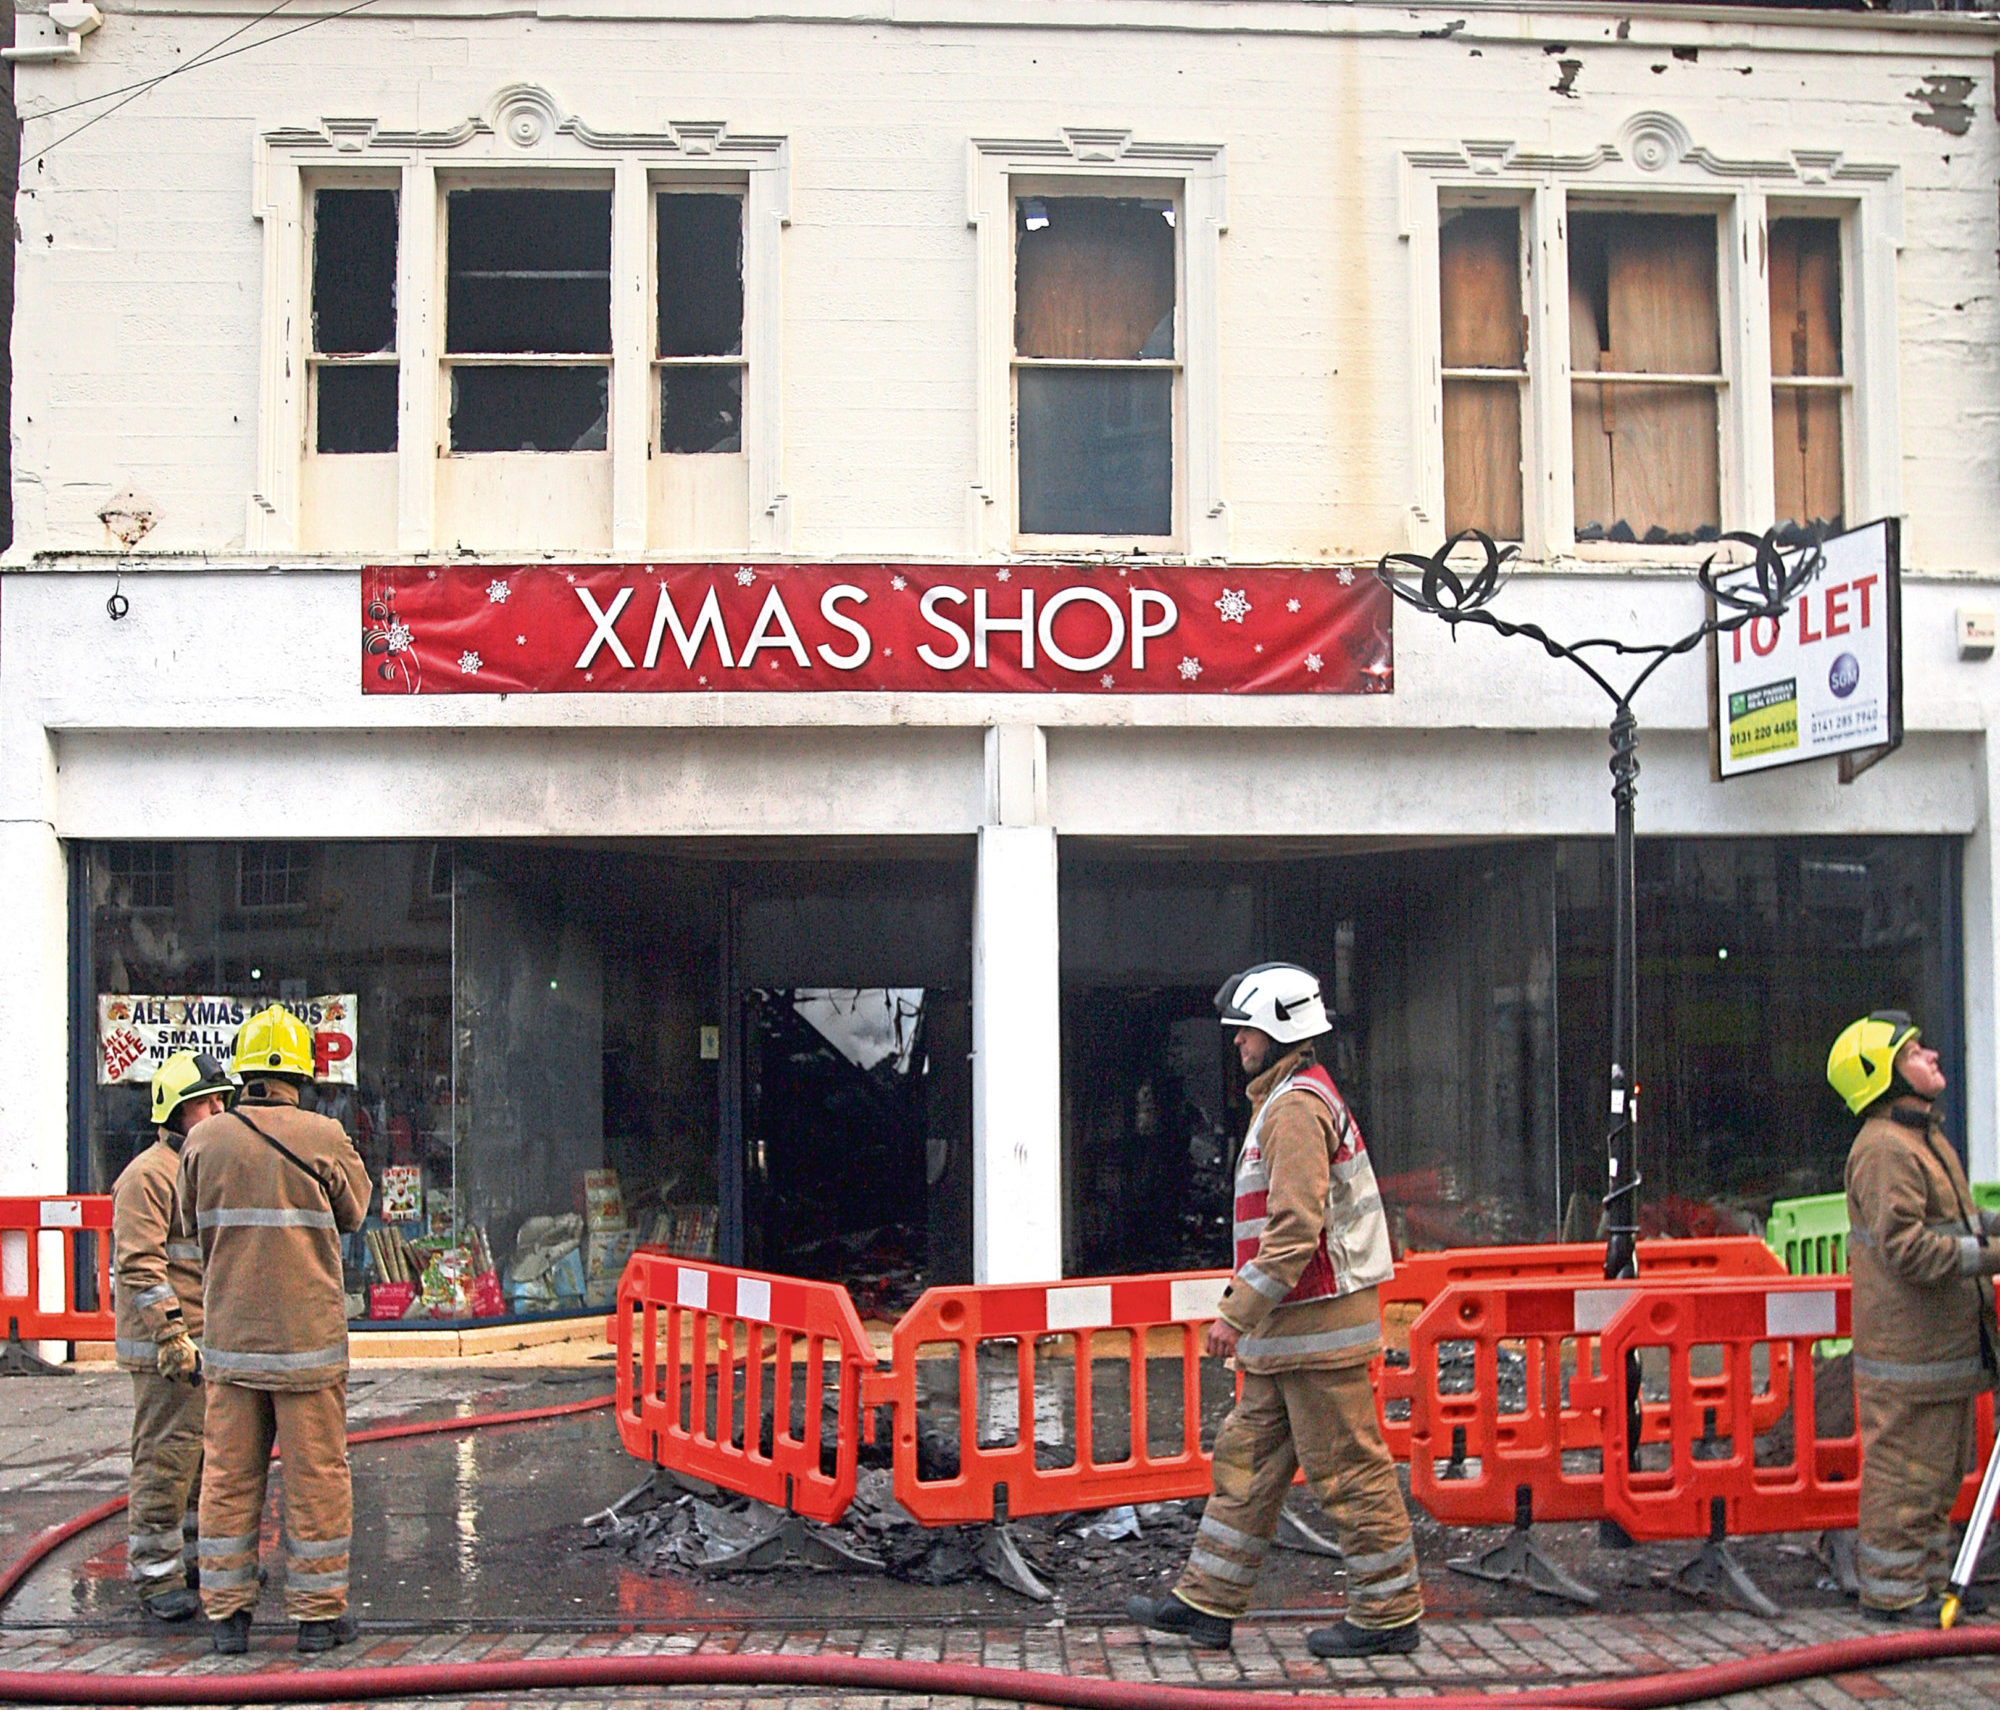 The fire at the Xmas Shop